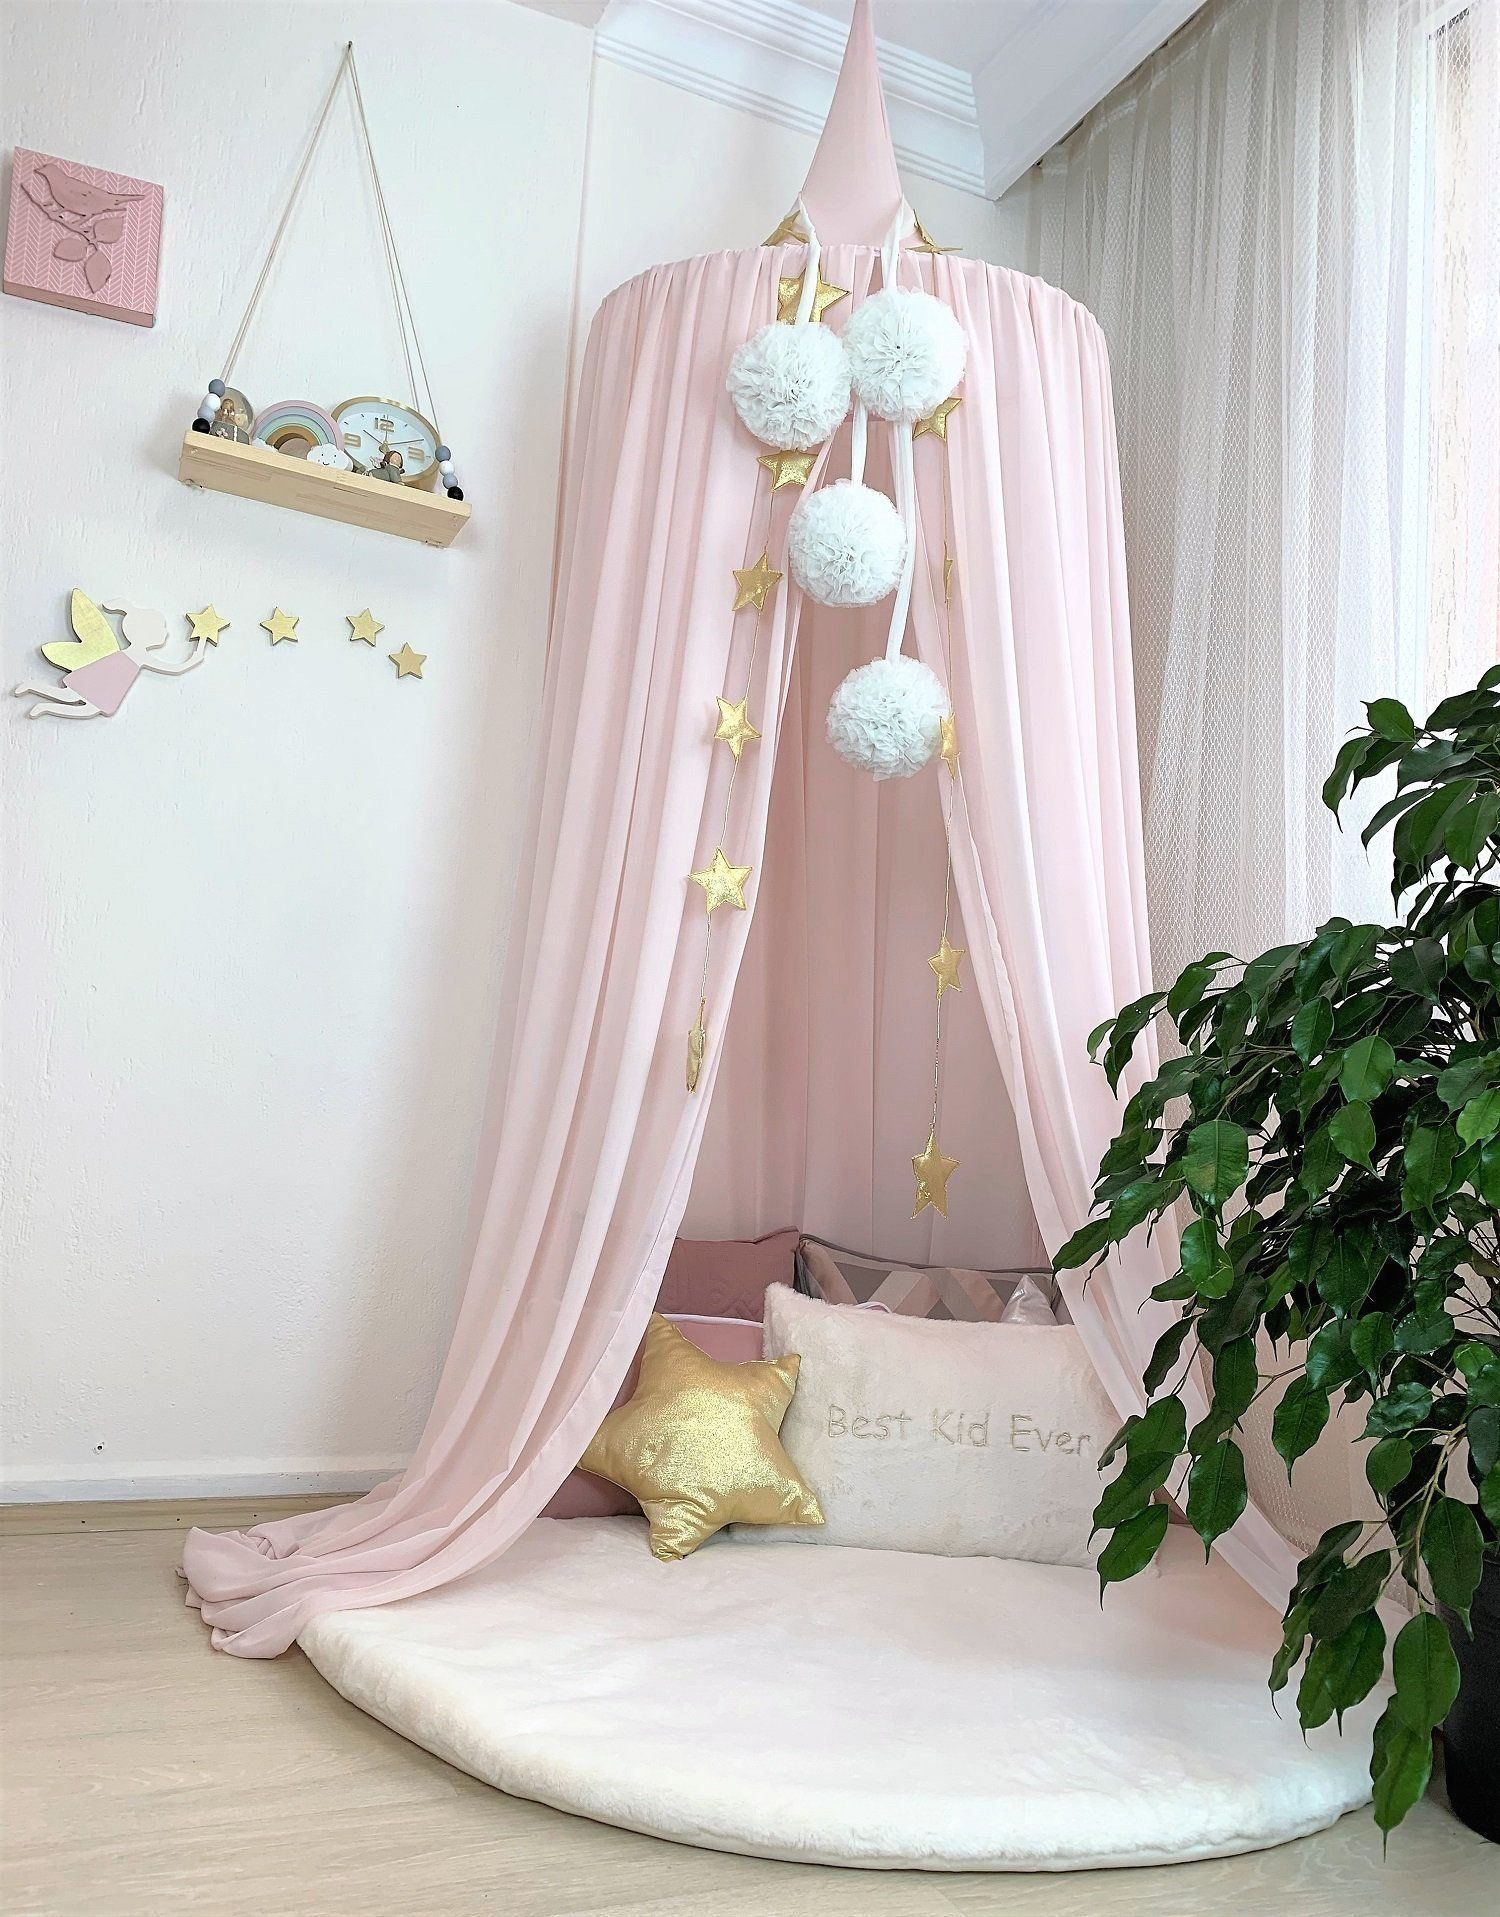 Pink Crepe Canopy, Pink Tent, Hanging Tent, Reading Nook ...